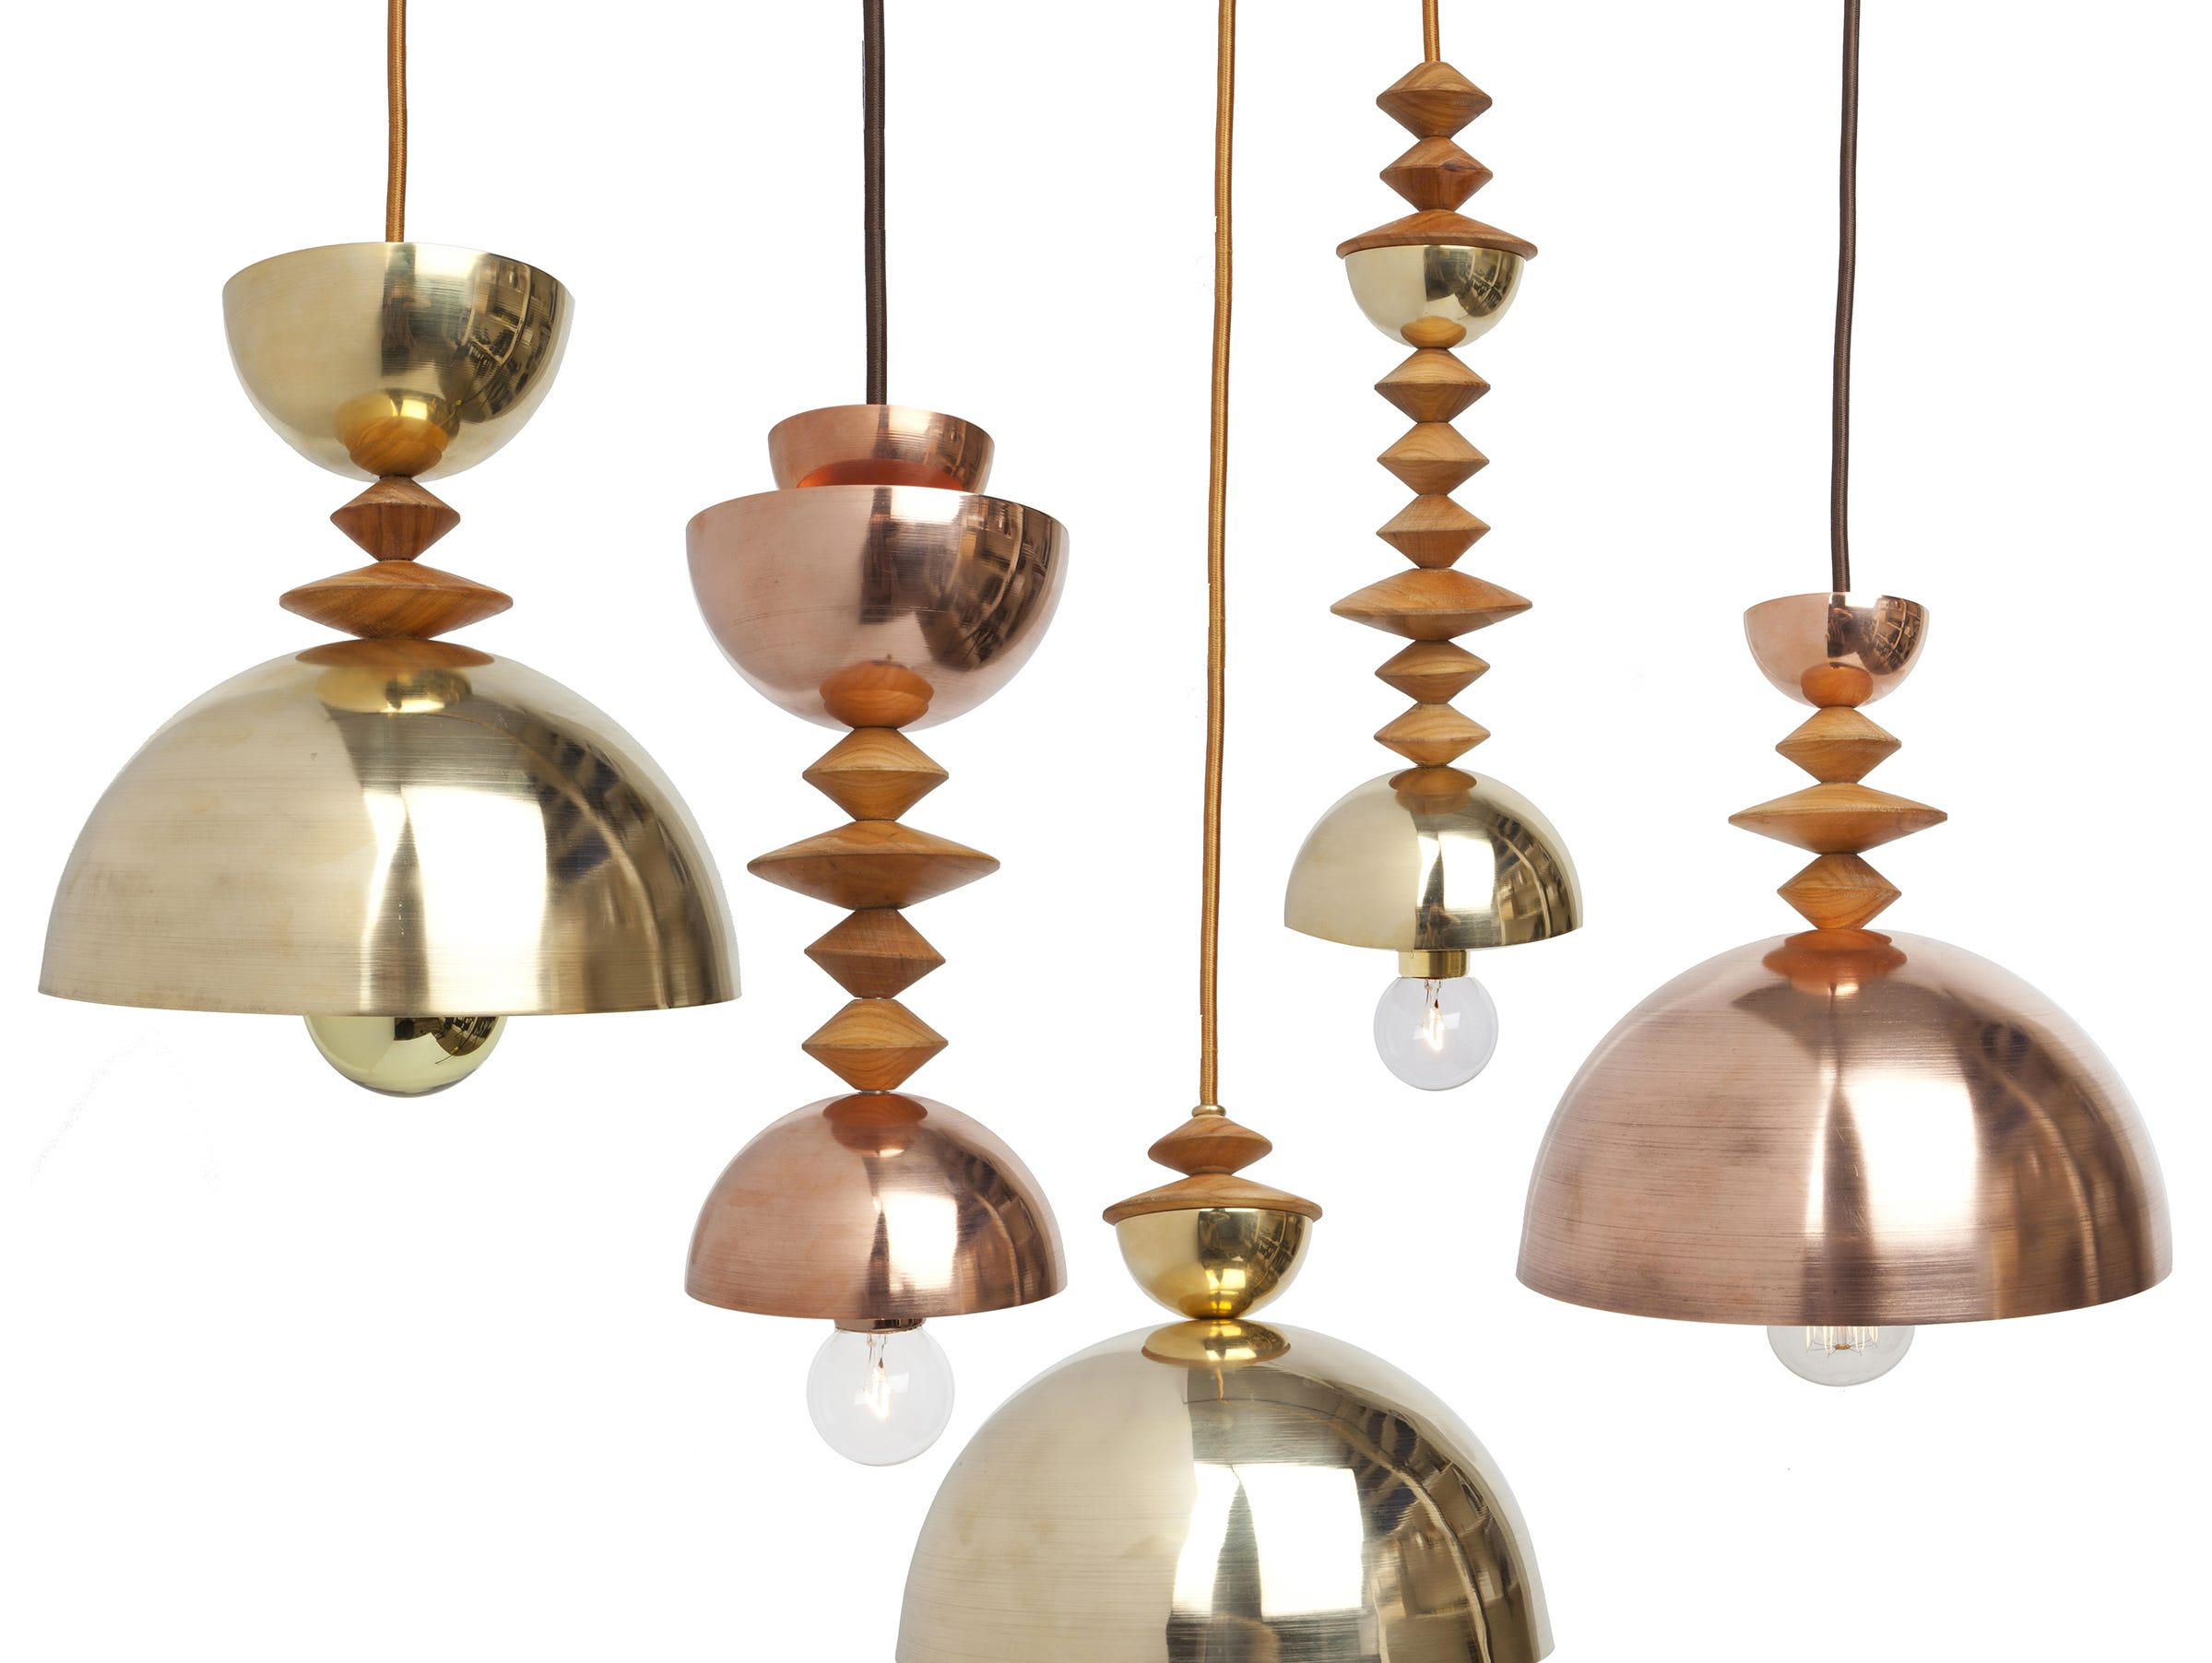 "New York designer Michele Varian is drawn to natural materials, so she says that unlike other lighting designers, all the metal components are solid (not plated or finished) brass, copper or steel. The sculptural Mala ""bead"" pendants were inspired by Romanian artist Constantin Brancusi and modern primitive design elements, created with simple geometric shapes and solid spun metal shades. The unfinished metal will gently patina with time."